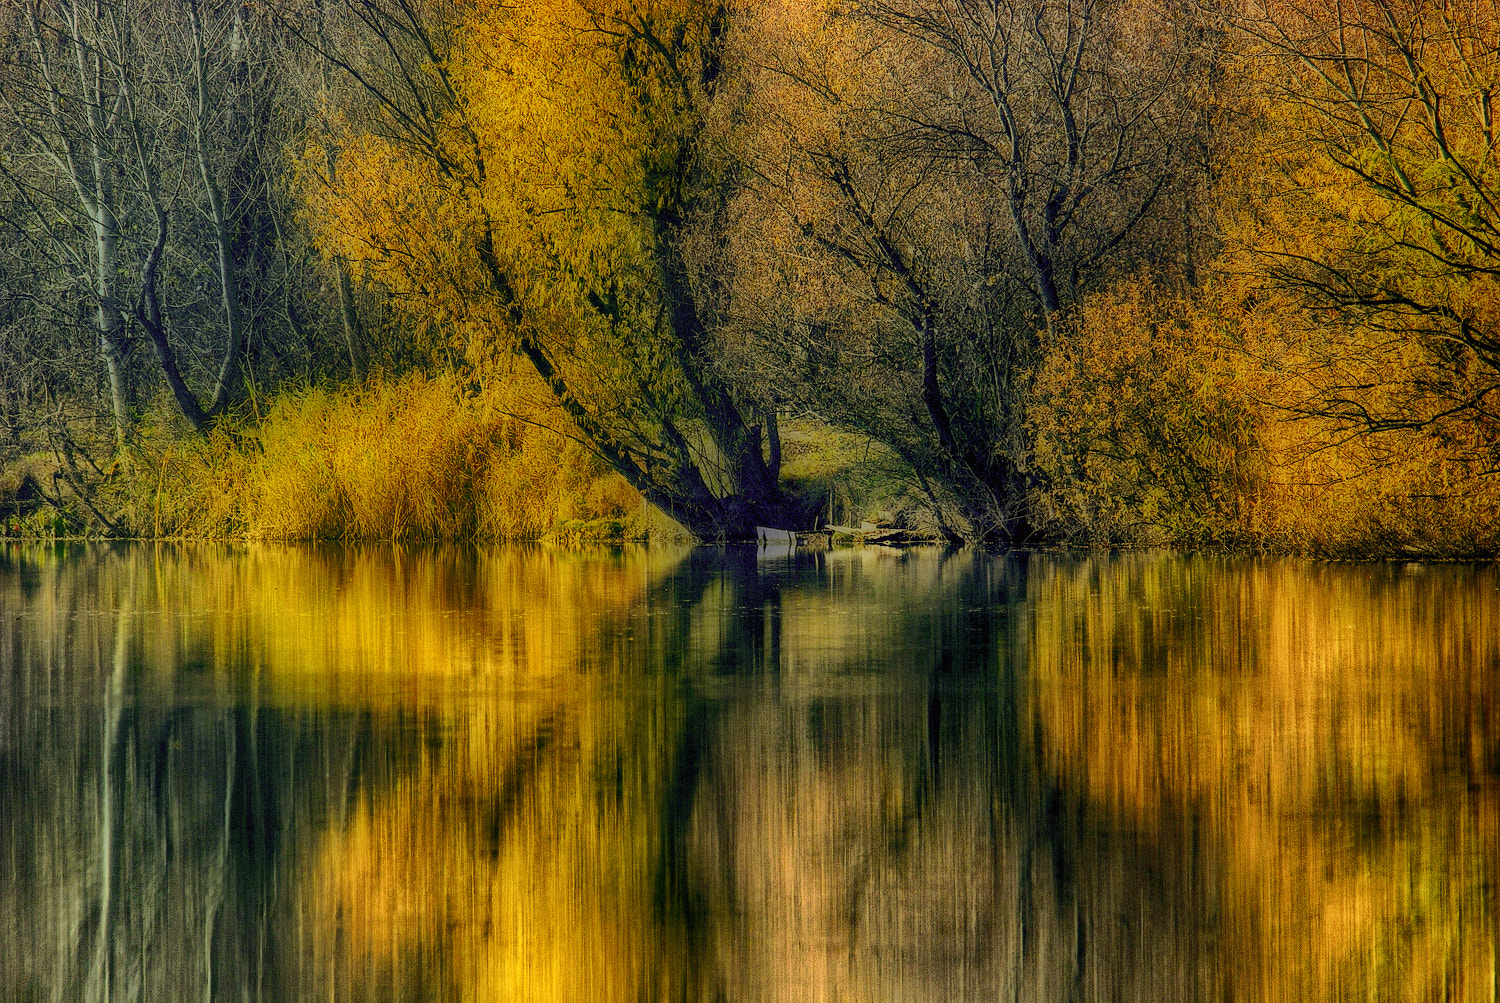 Photograph Reflection by Andy 58 on 500px